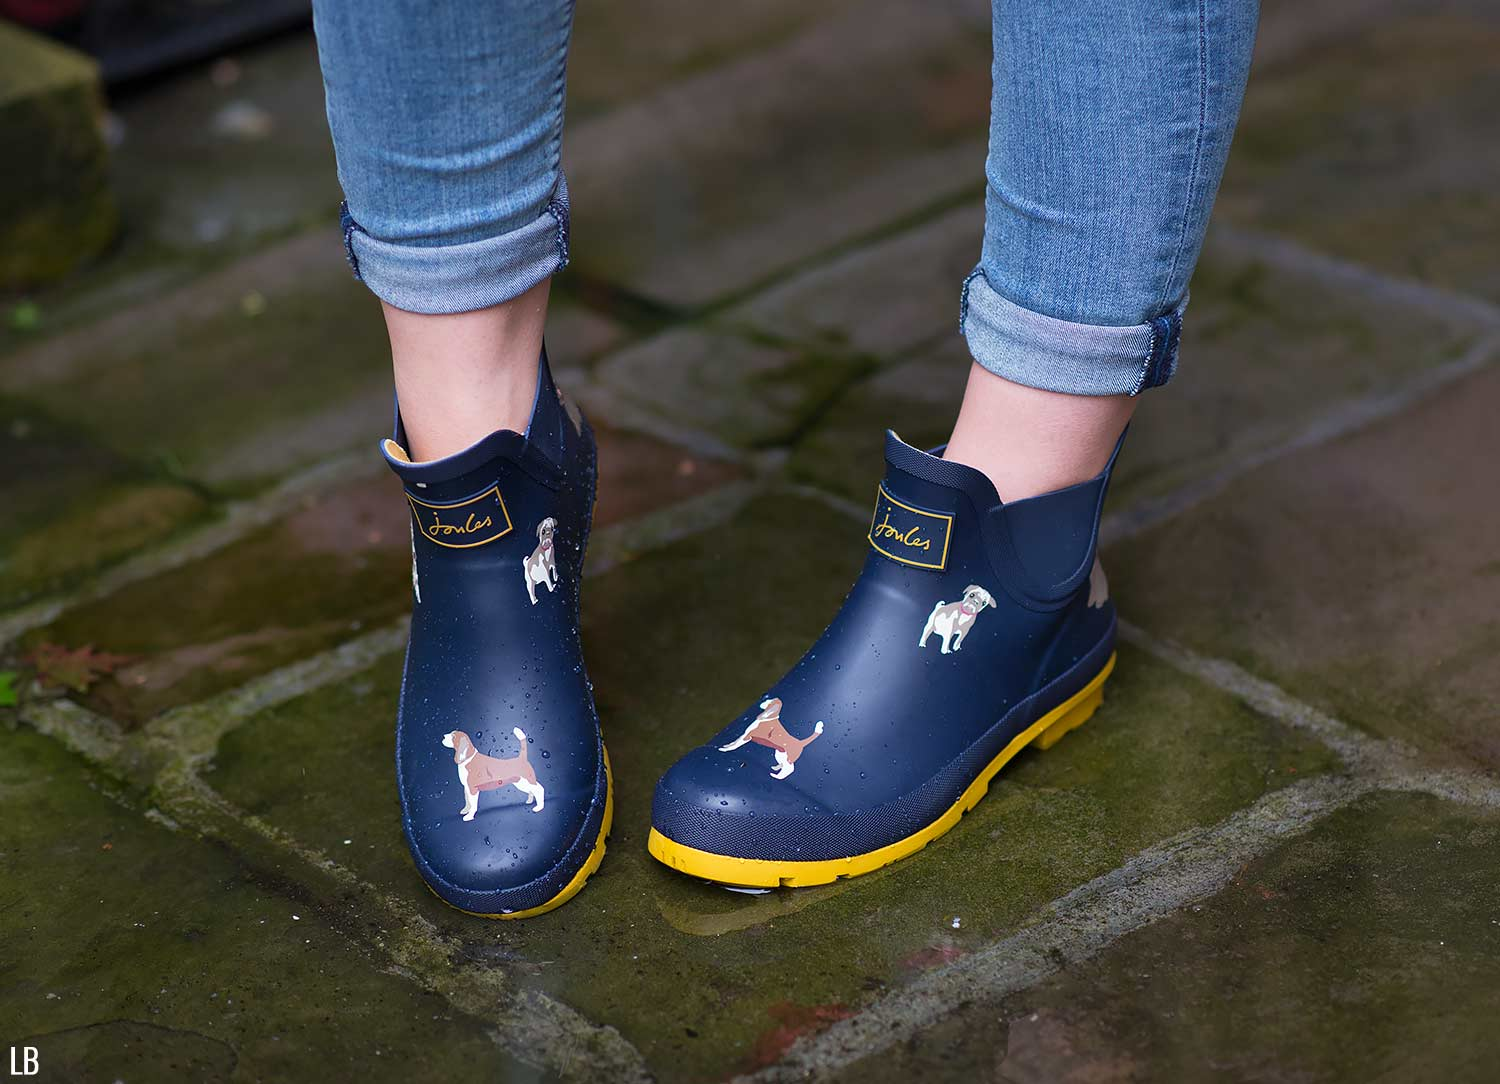 Joules Wellibob Rain Boots in Dog Print Review